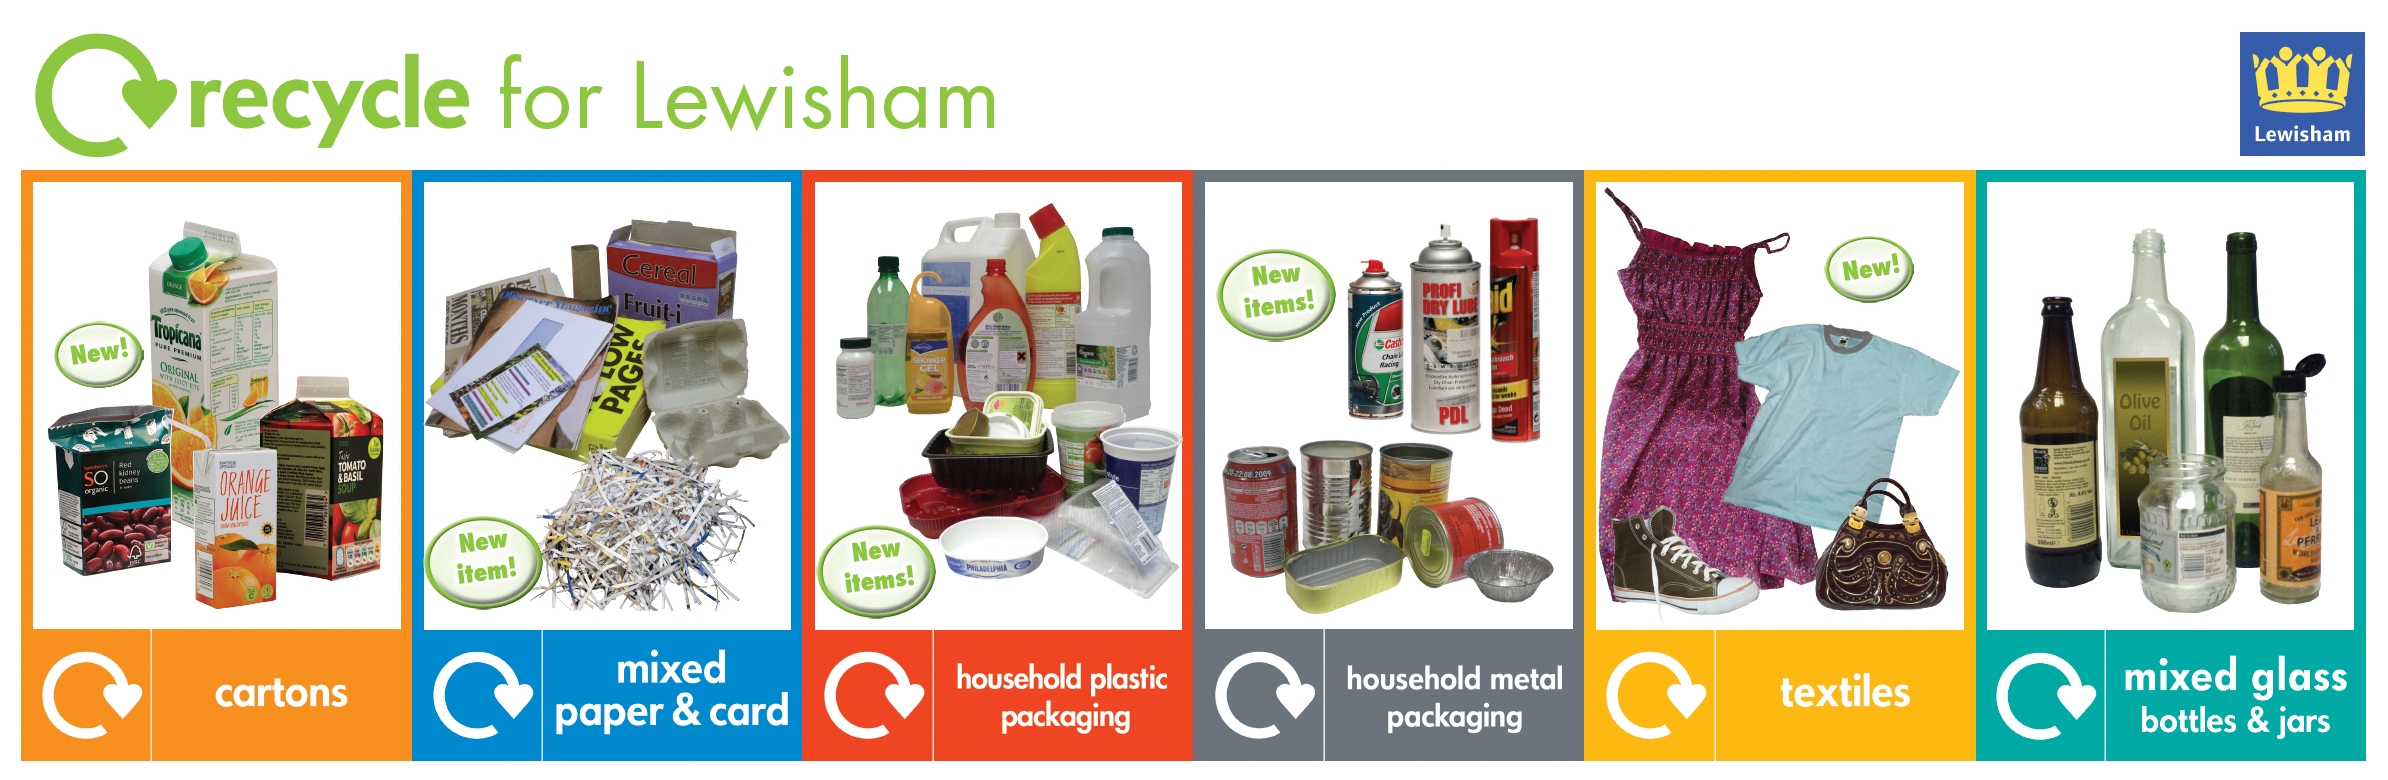 Boost For Recycling As Lewisham Chooses New Contractor